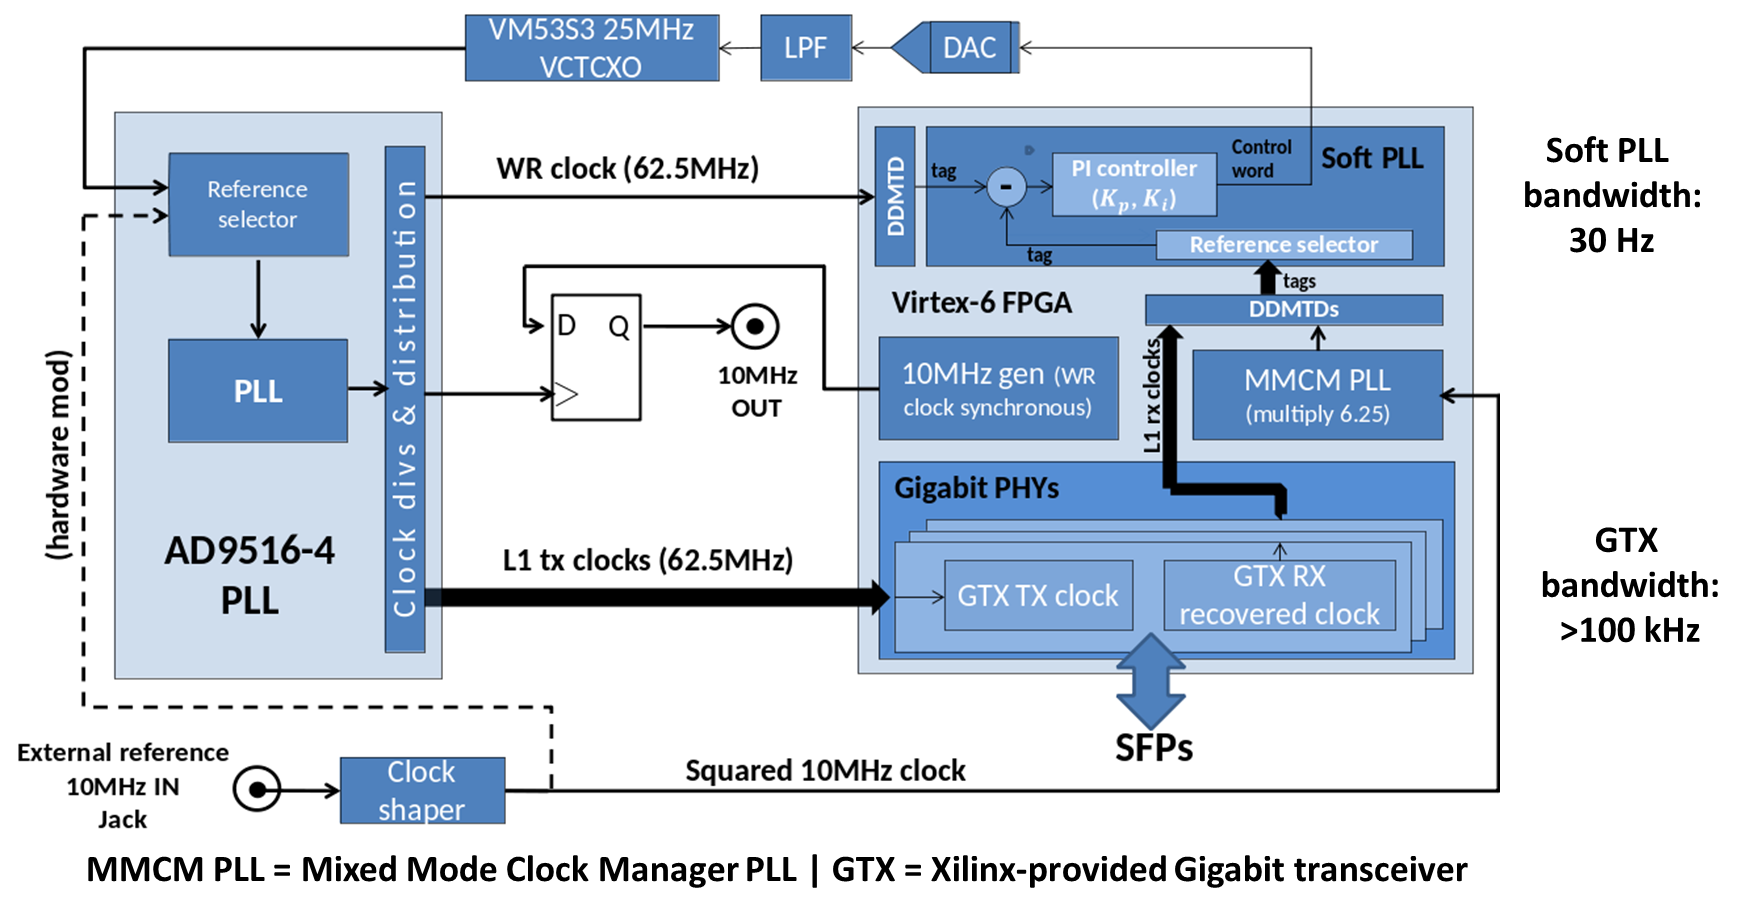 figures/switch/wrs_v3_3_clocking_with_bandwidth.png